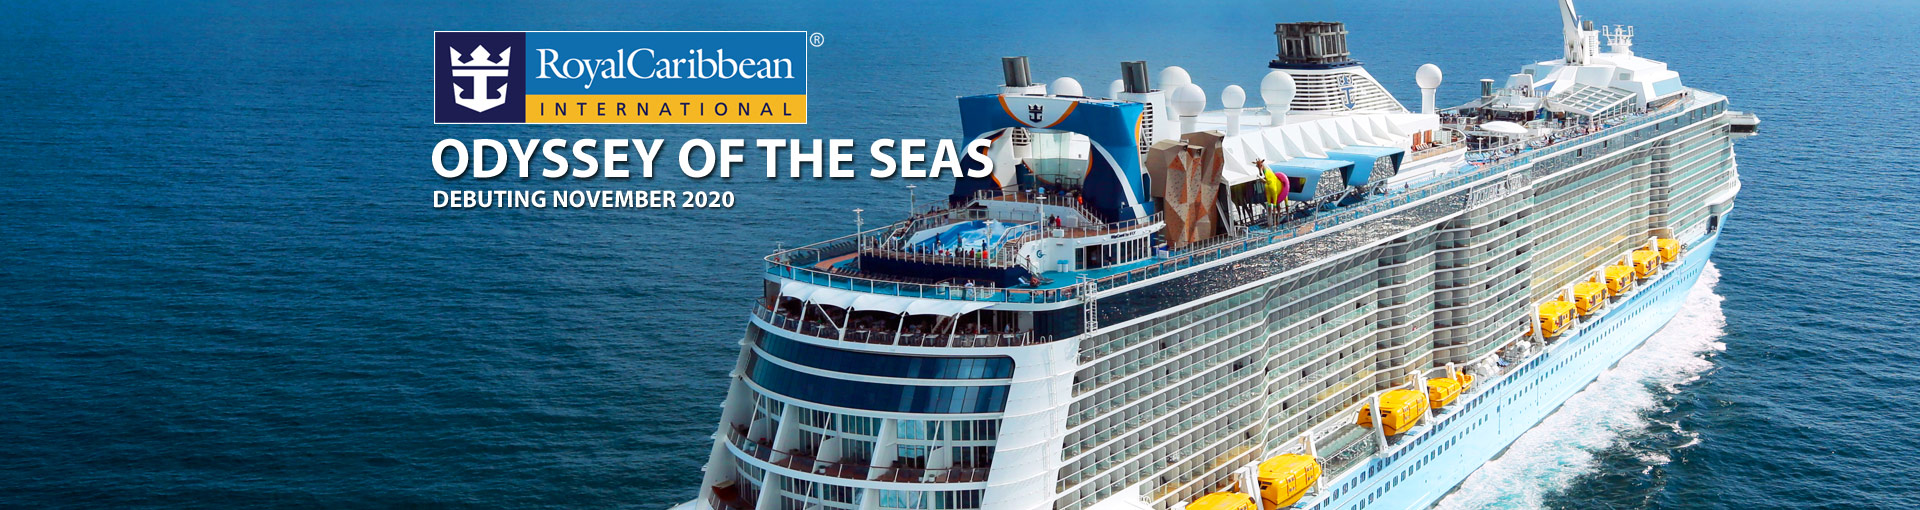 Royal Caribbean Odyssey of the Seas Cruise Ship